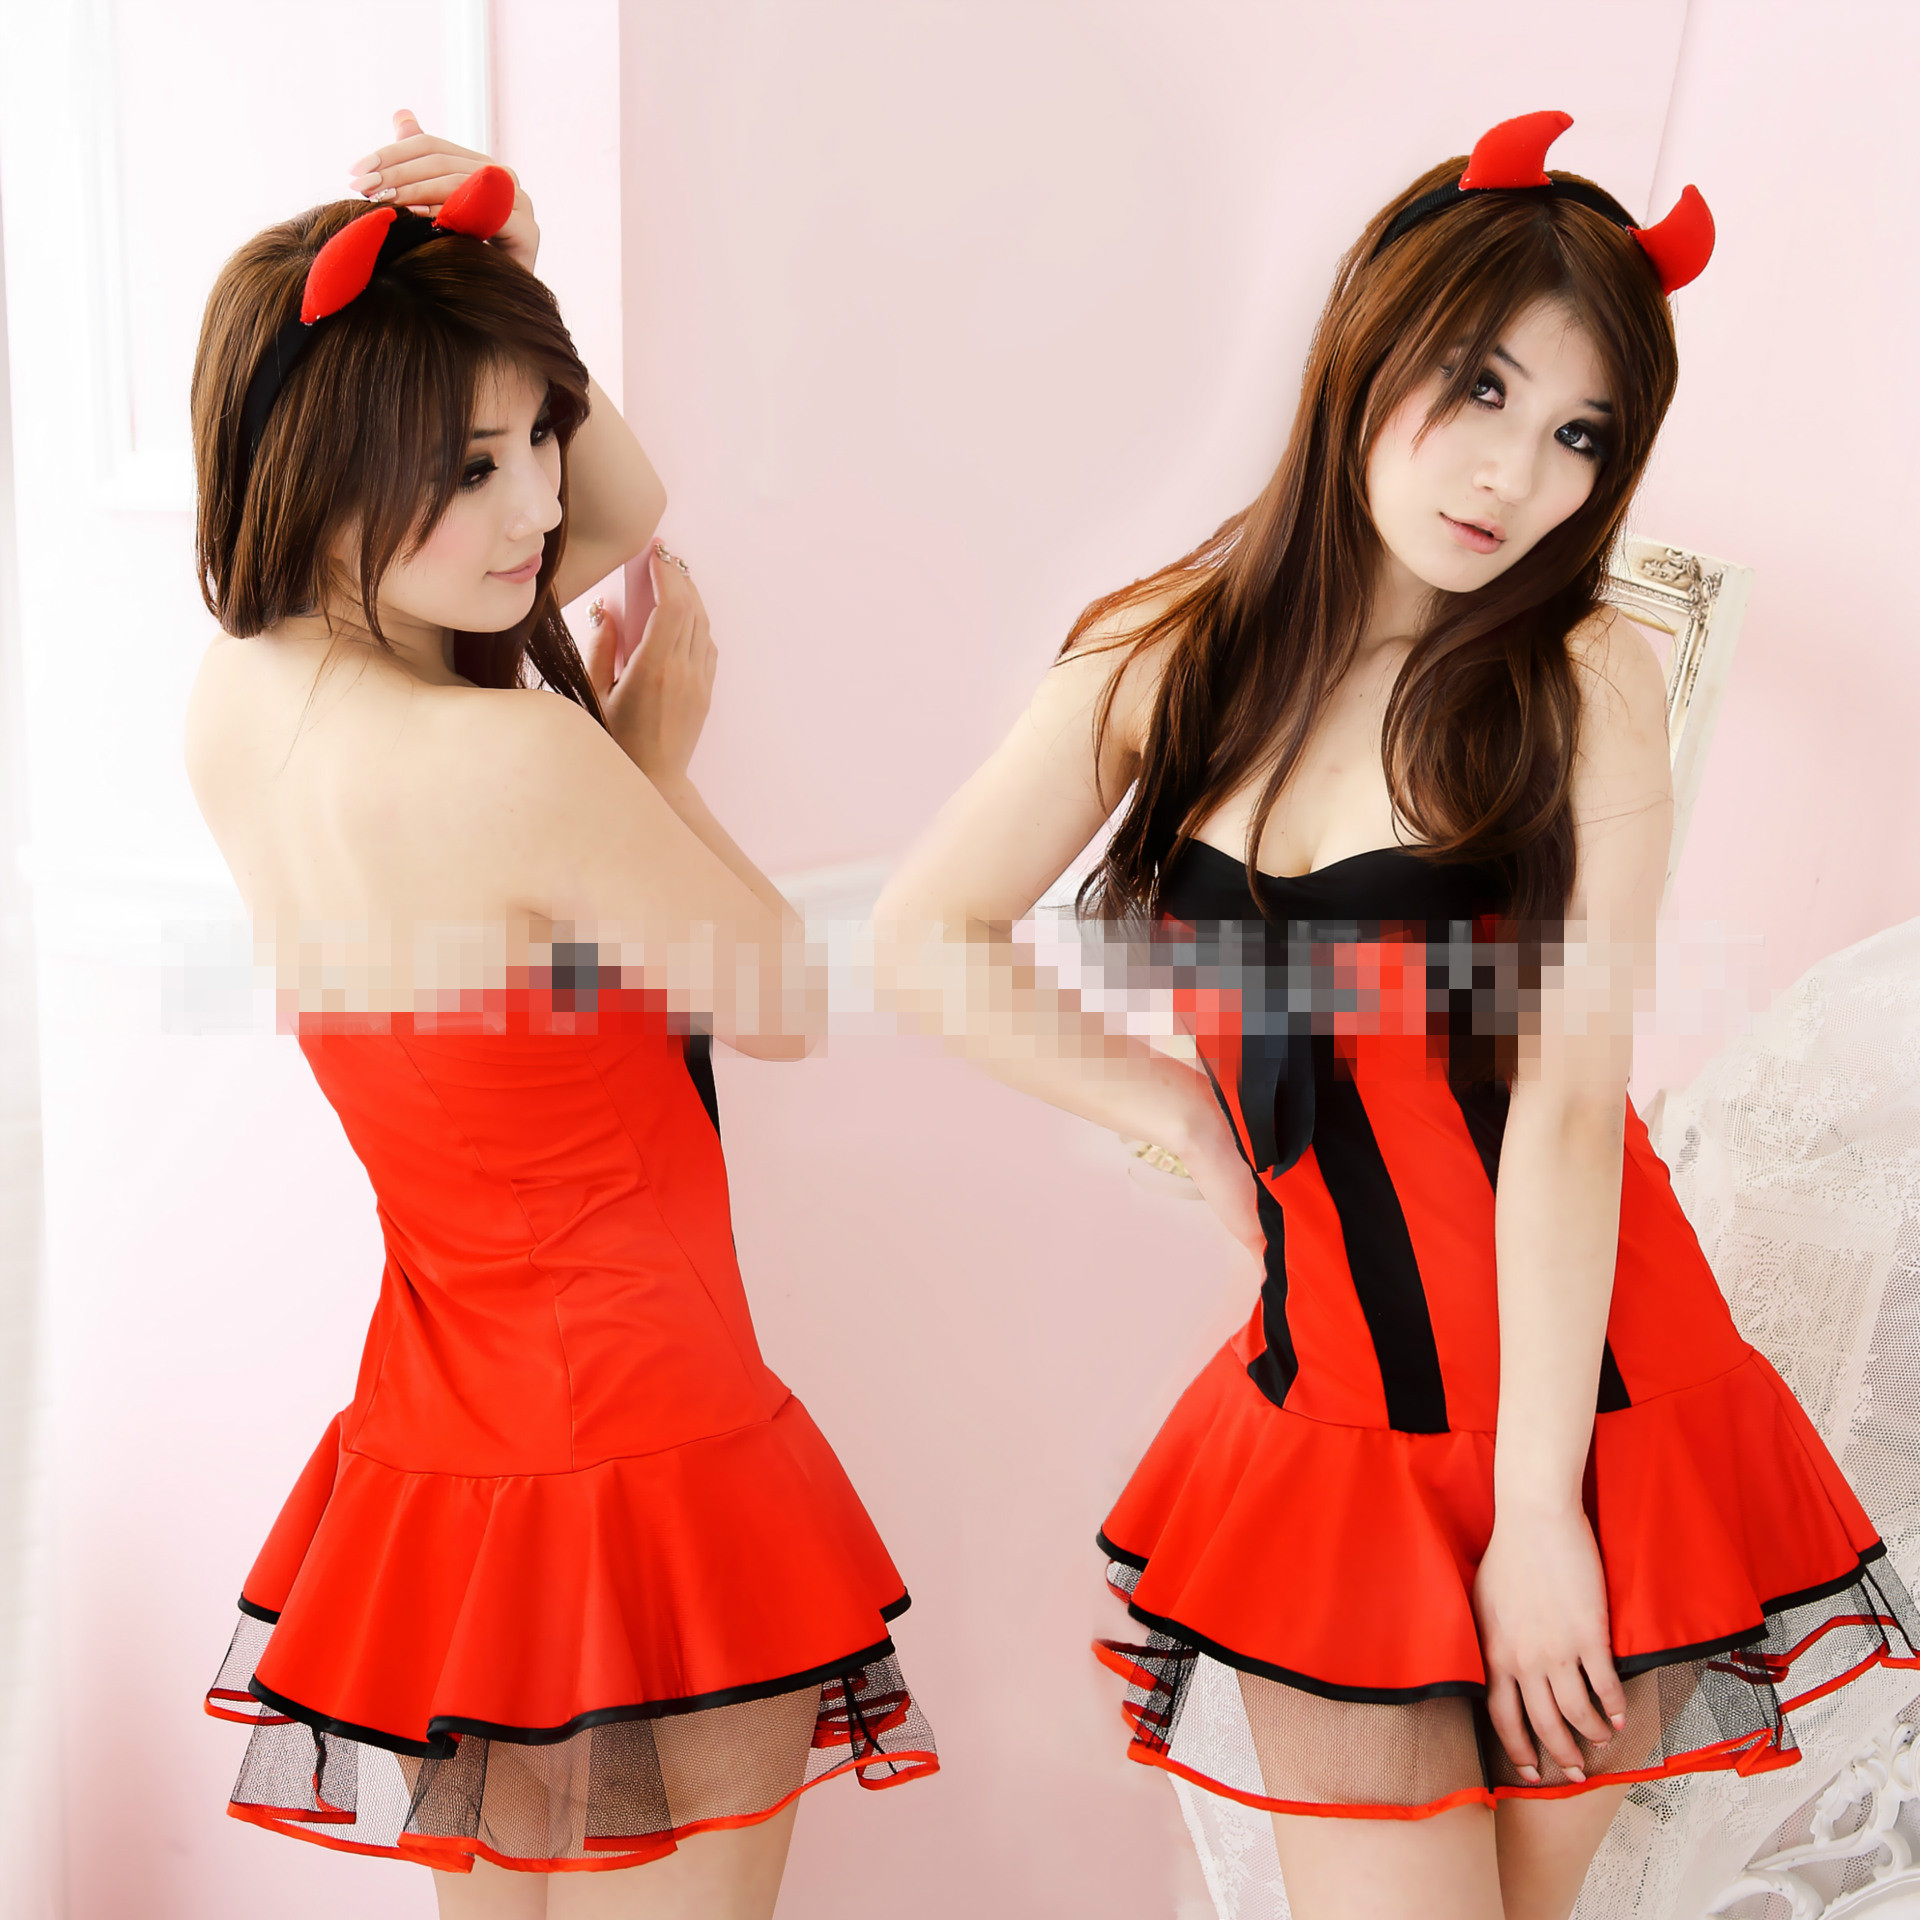 <font><b>Sexy</b></font> Costumes 2017 Female Disfraces <font><b>Halloween</b></font> <font><b>Sexy</b></font> Naughty Girl Cosplay Costumes Devil and Demon Role Play Dress Europe Vampire image